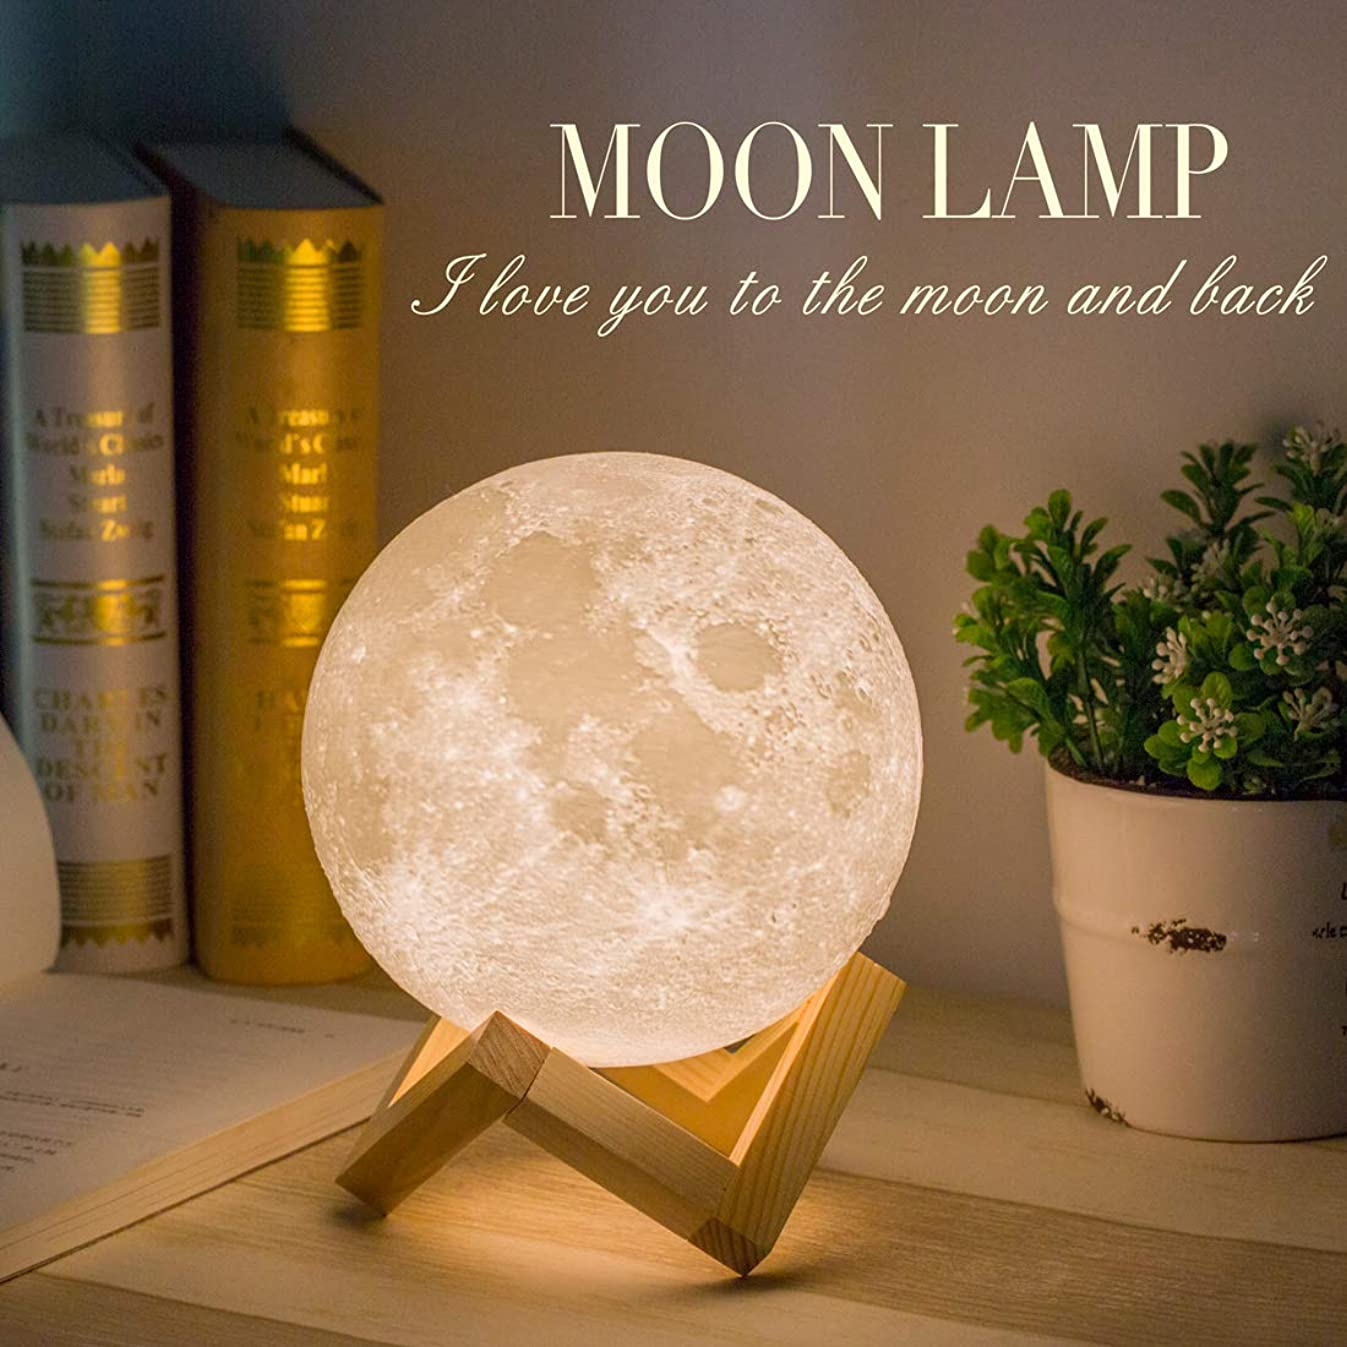 Moon Lamp, Balkwan 5.9 inches 3D Printing Moon Light uses Dimmable and Touch Control Design,Romantic Funny Birthday Gifts for Women,Men,Kids,Child and Baby. Rustic Home Decor Rechargeable Night Light